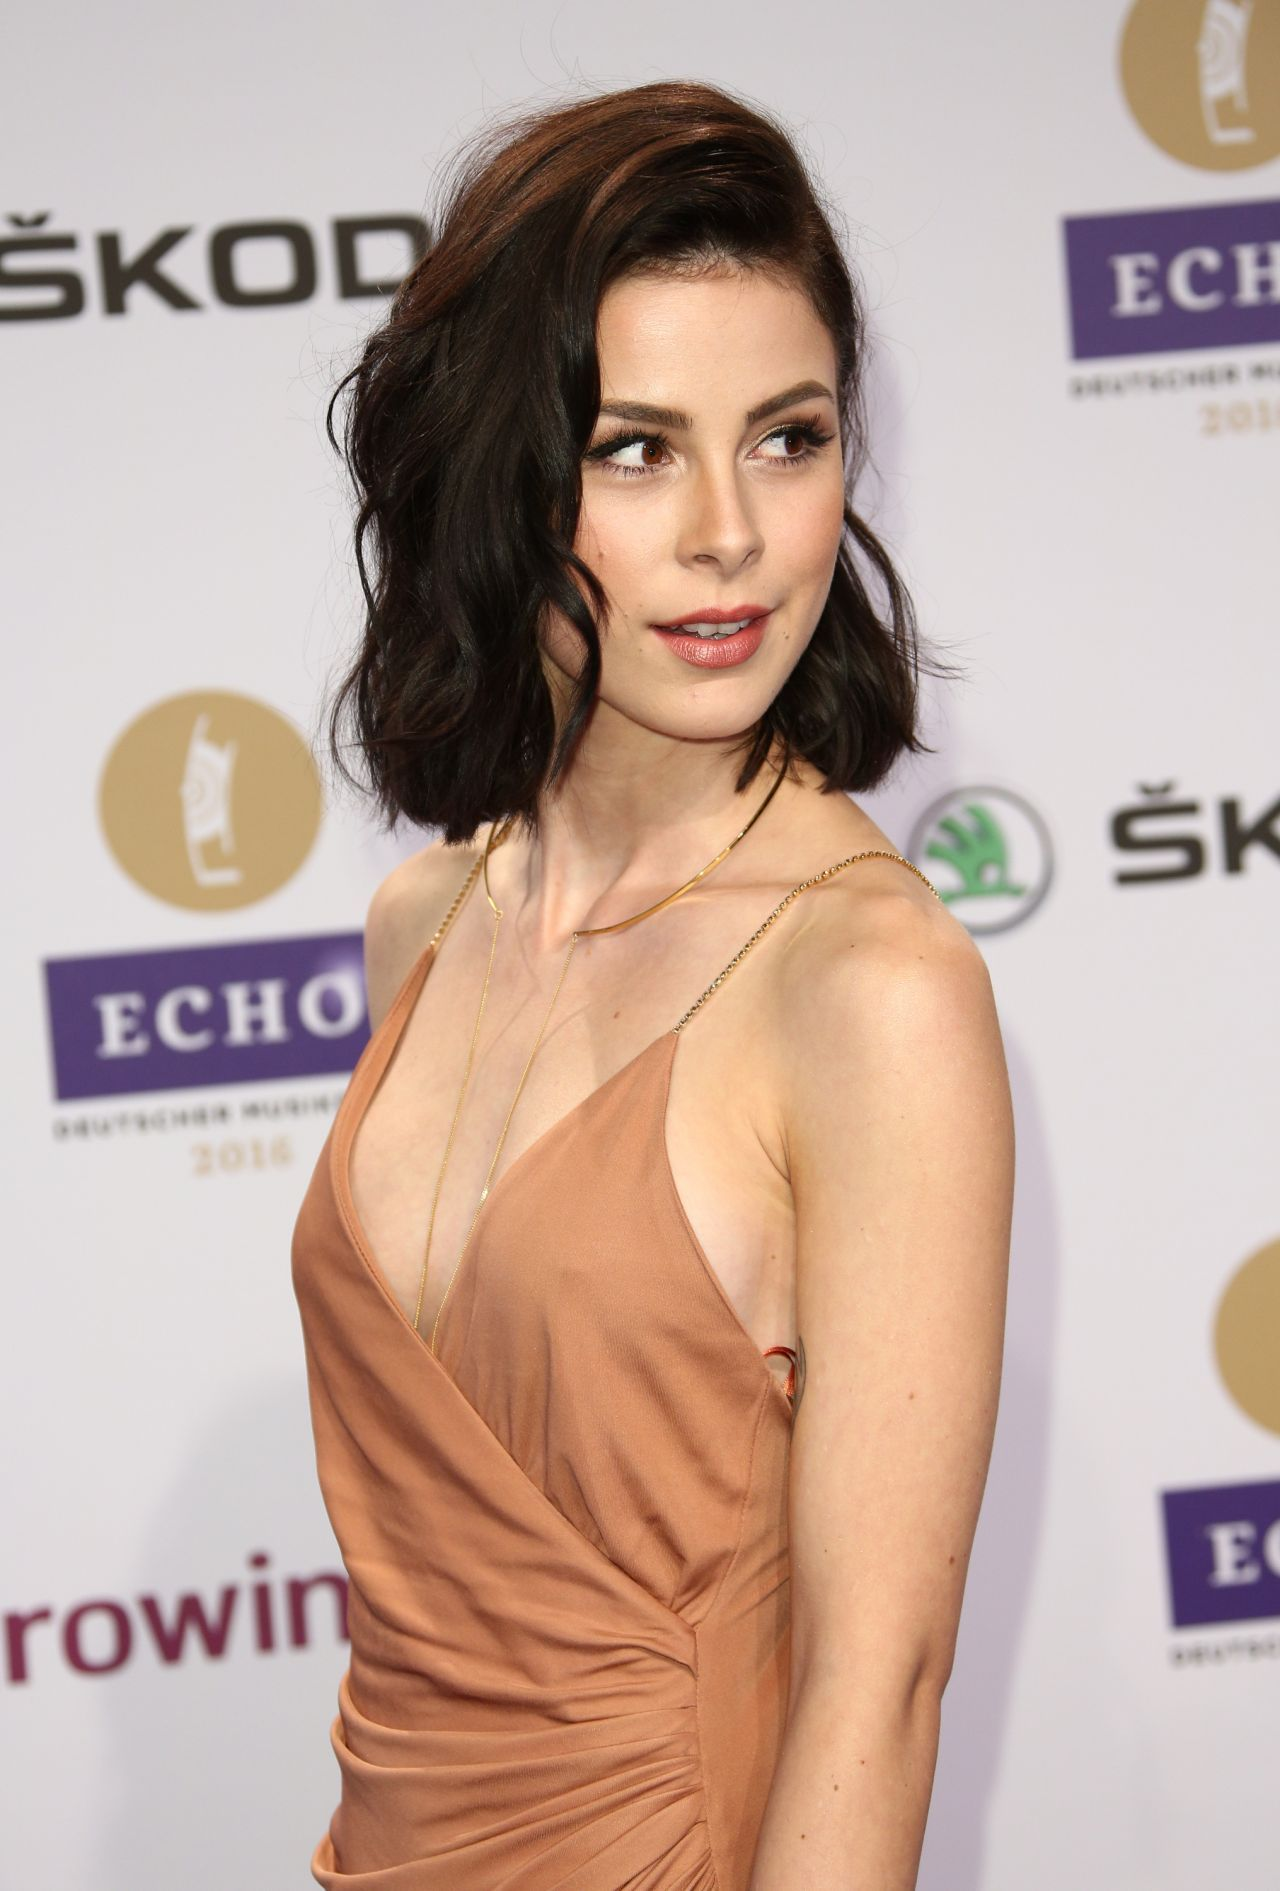 Sideboobs Lena Meyer Landrut nude (32 foto and video), Pussy, Paparazzi, Boobs, legs 2006